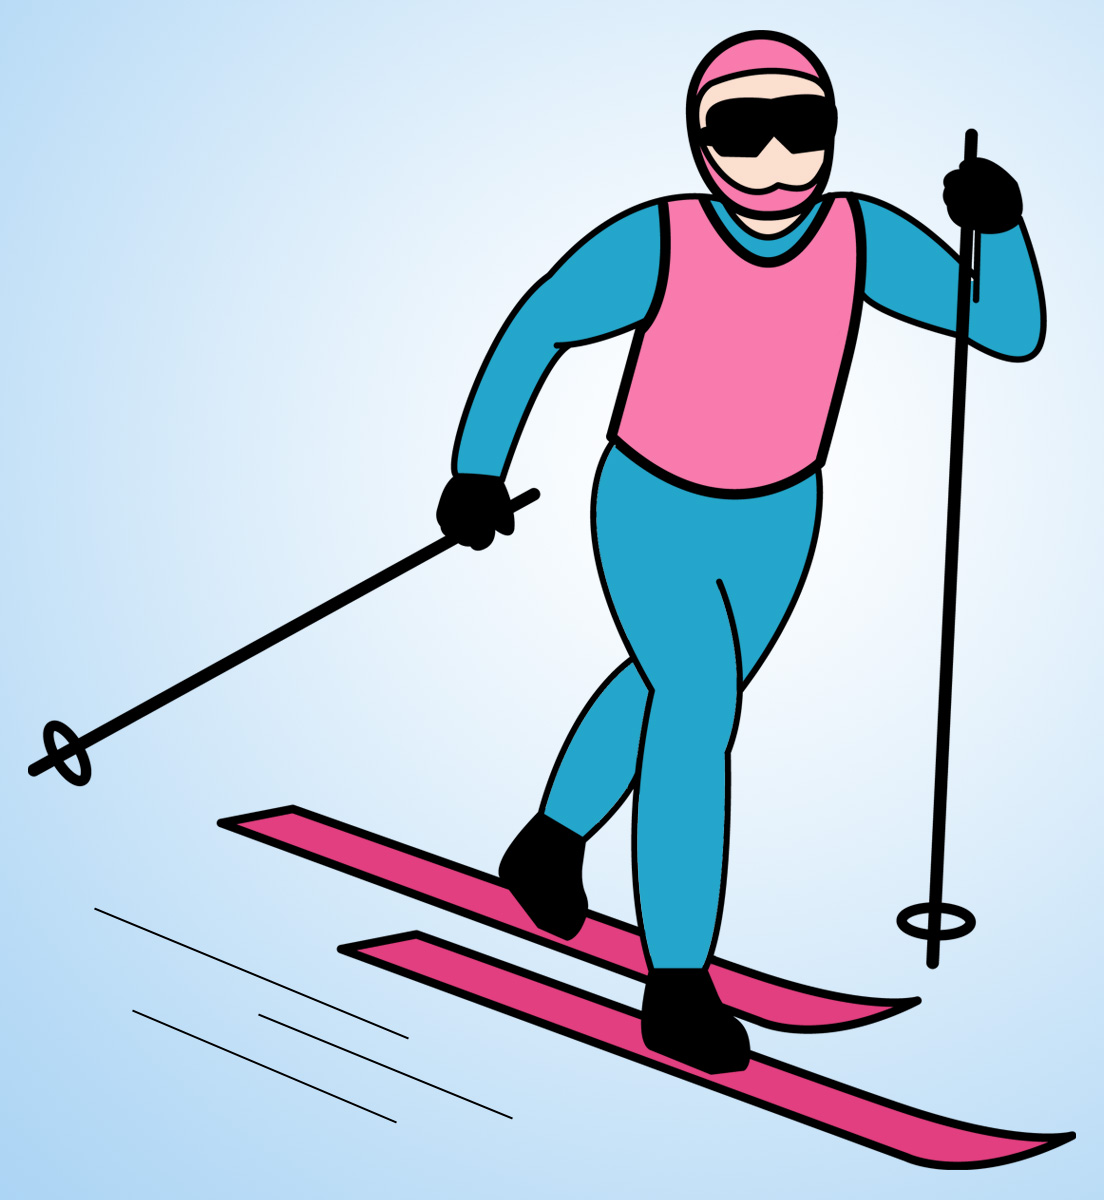 Skiing clipart wipeout Clip art 120 ski Clipart